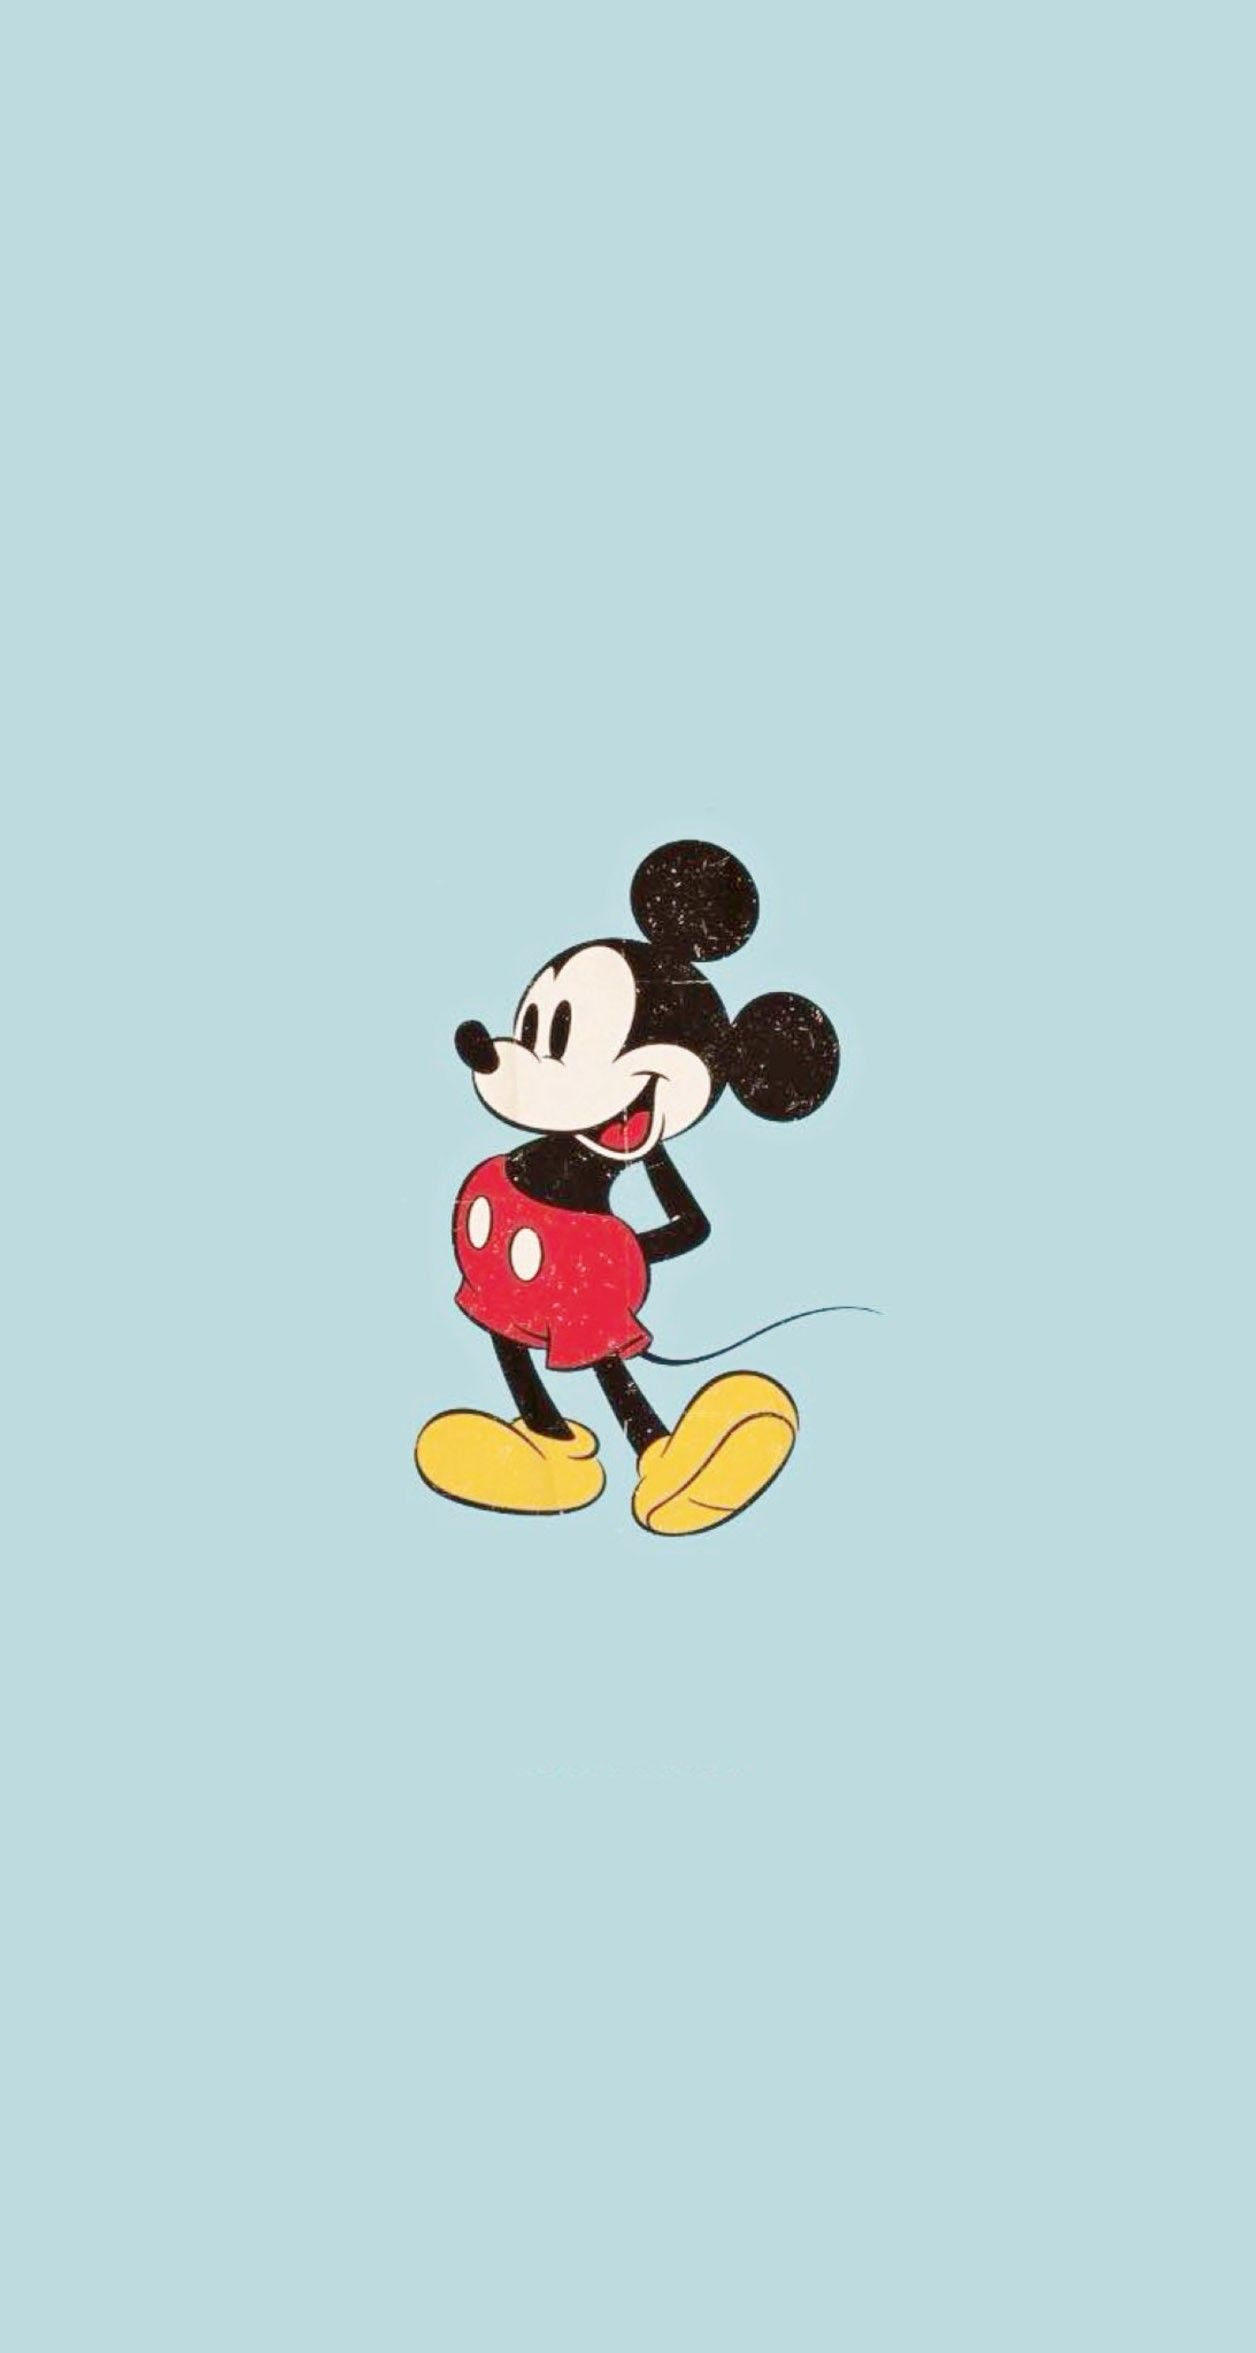 Wallpaper Hd Iphone Mickey Mouse